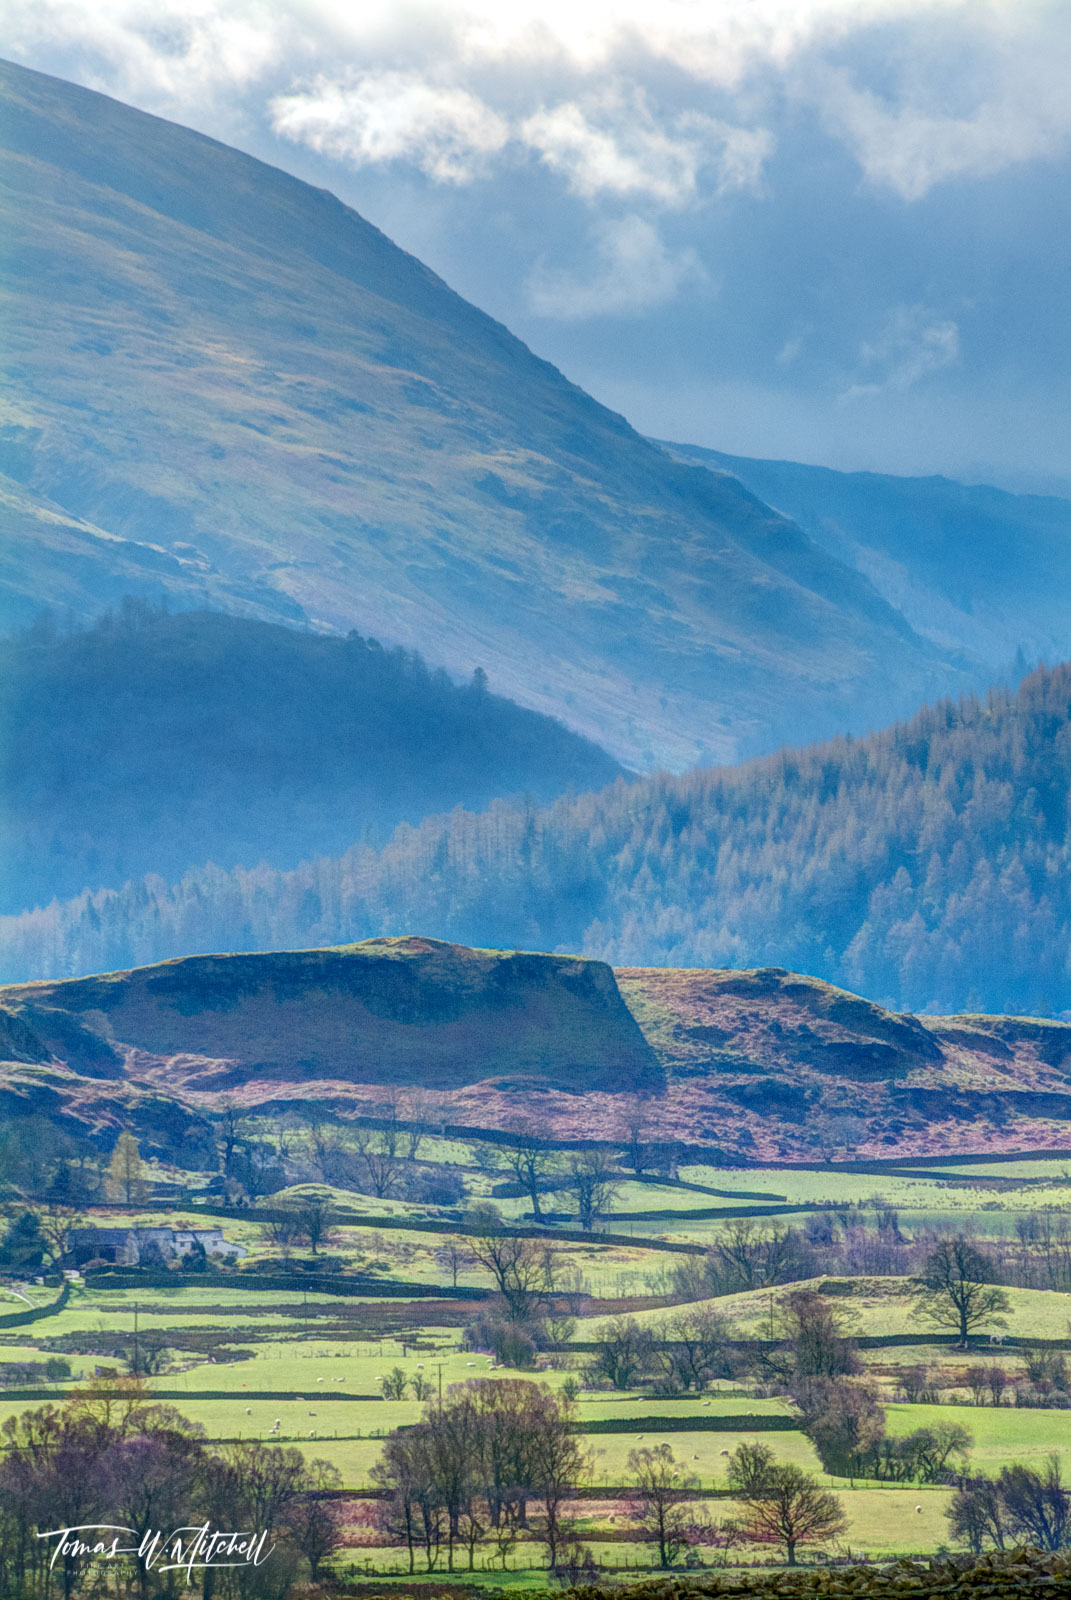 limited edition, museum grade, fine art, prints, photograph, keswick, cumbria, lake district, england, mountains, layers, fields, rock walls, hills, sky, green, springtime, english, trees, valleys, photo